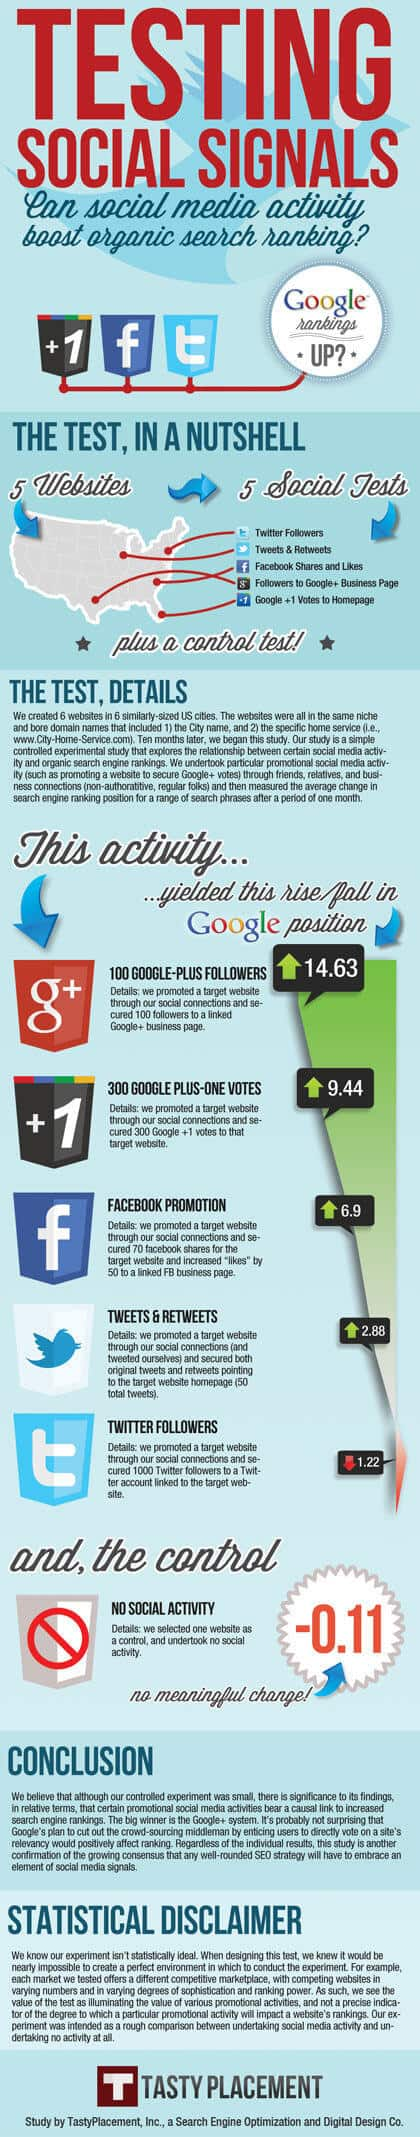 Infographic: Testing Social Signals